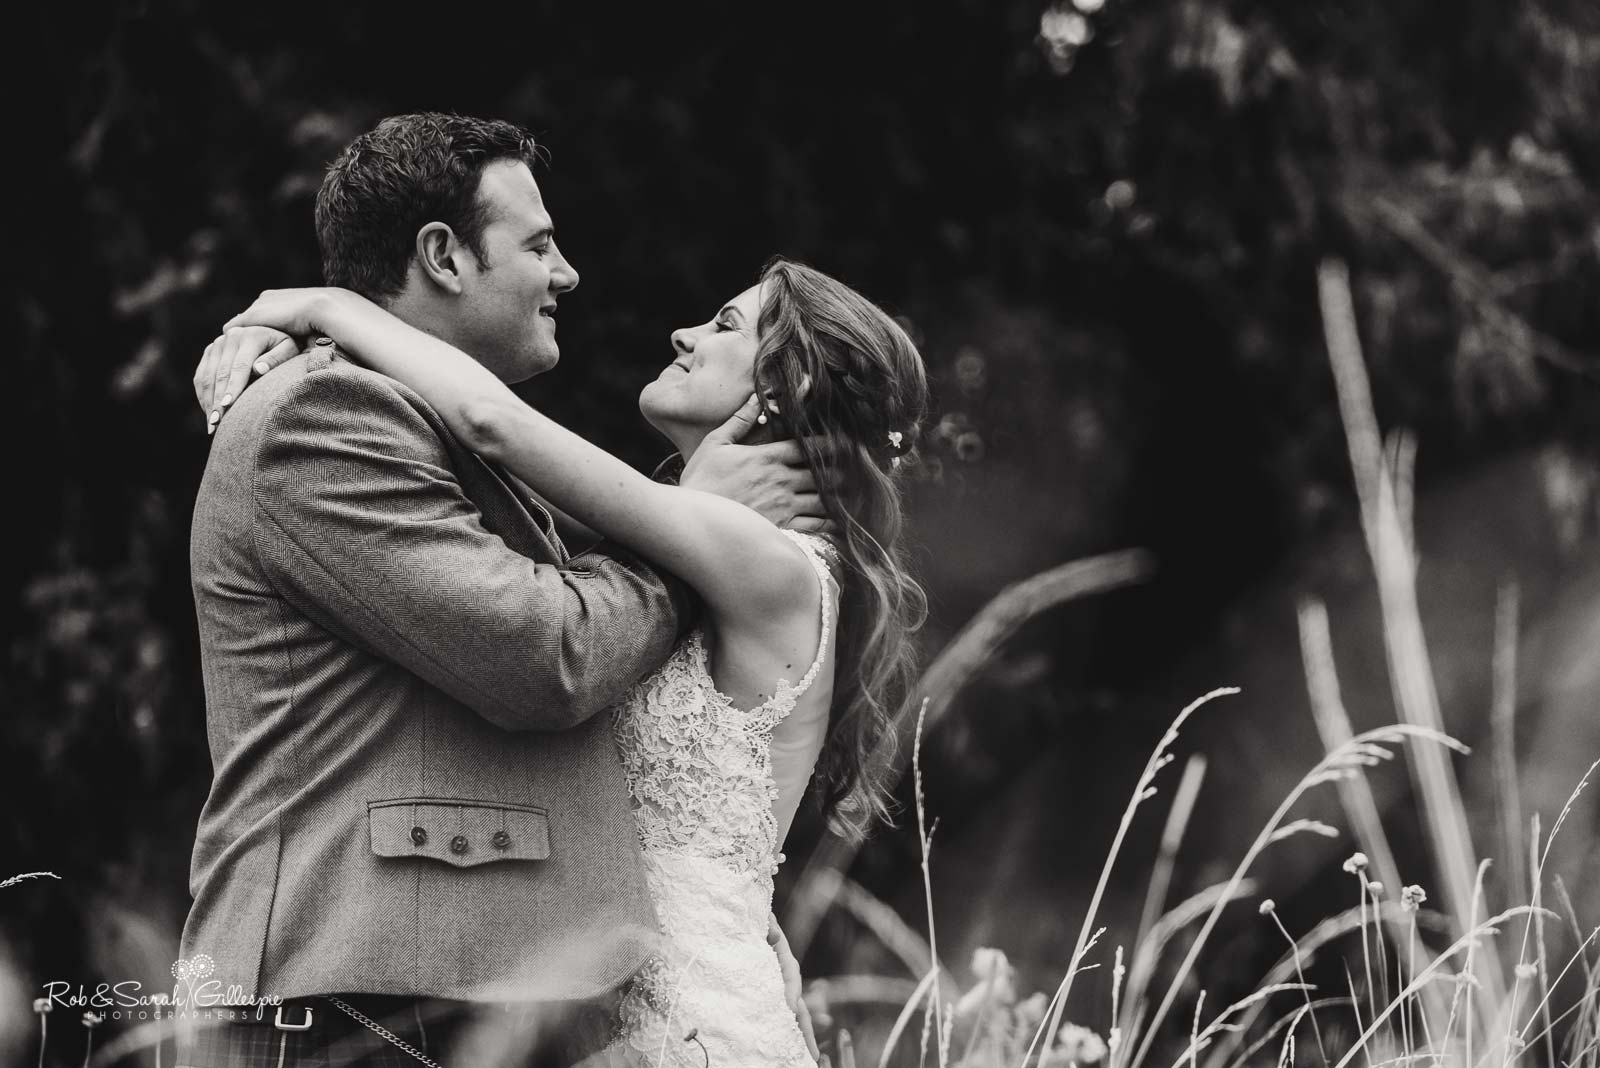 Bride and groom together at Wethele Manor